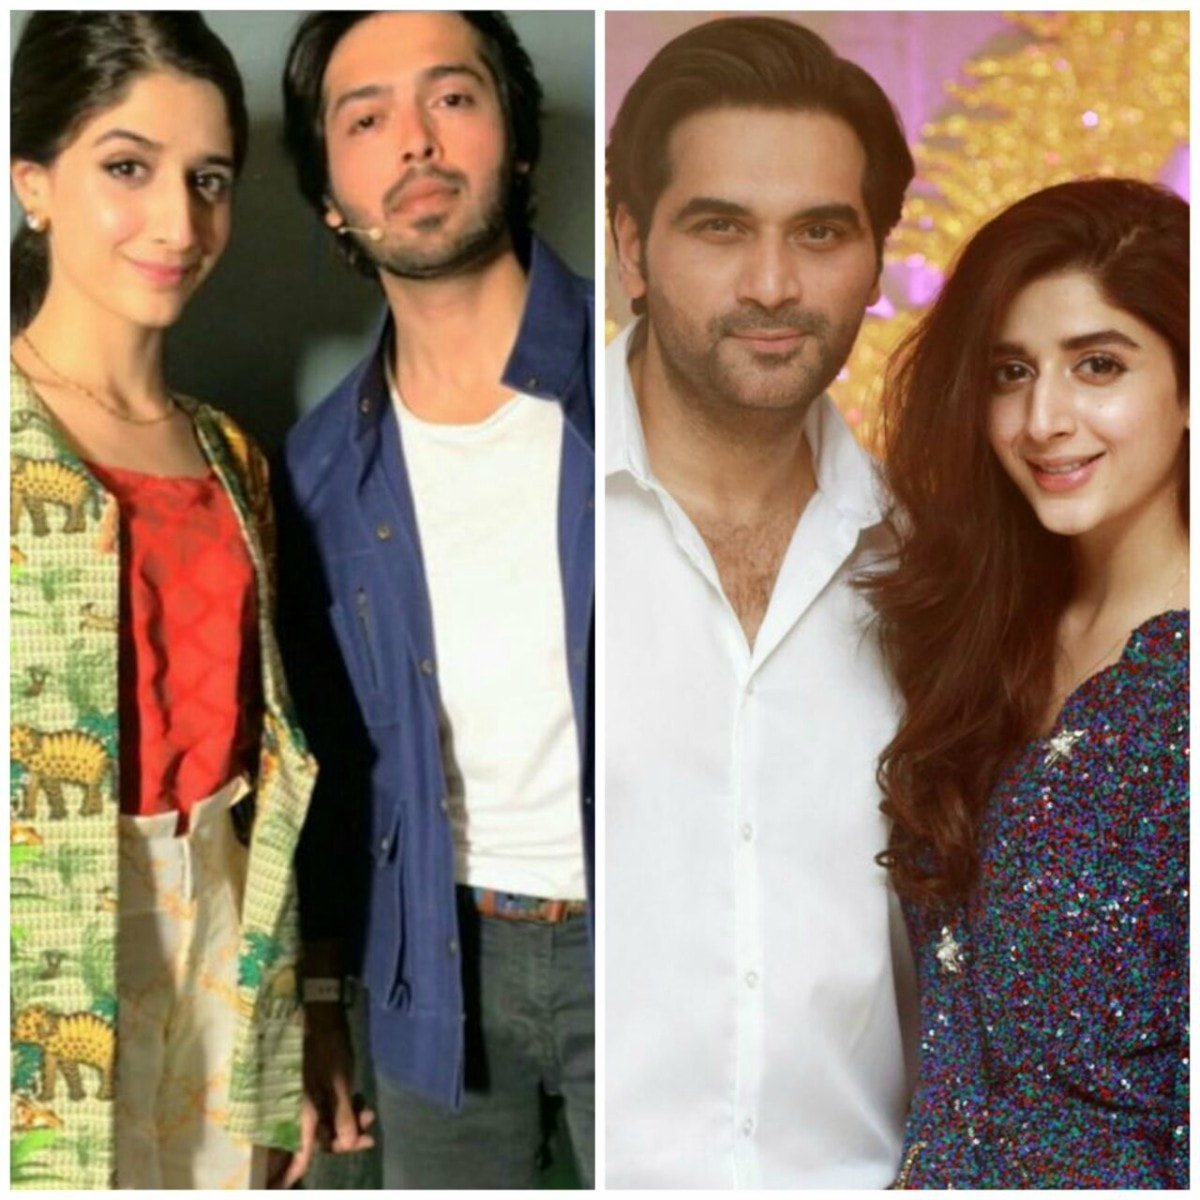 Fans are curious: Who will Mawra pair with in JPNA 2 — Humayun Saeed or Fahad Mustafa?